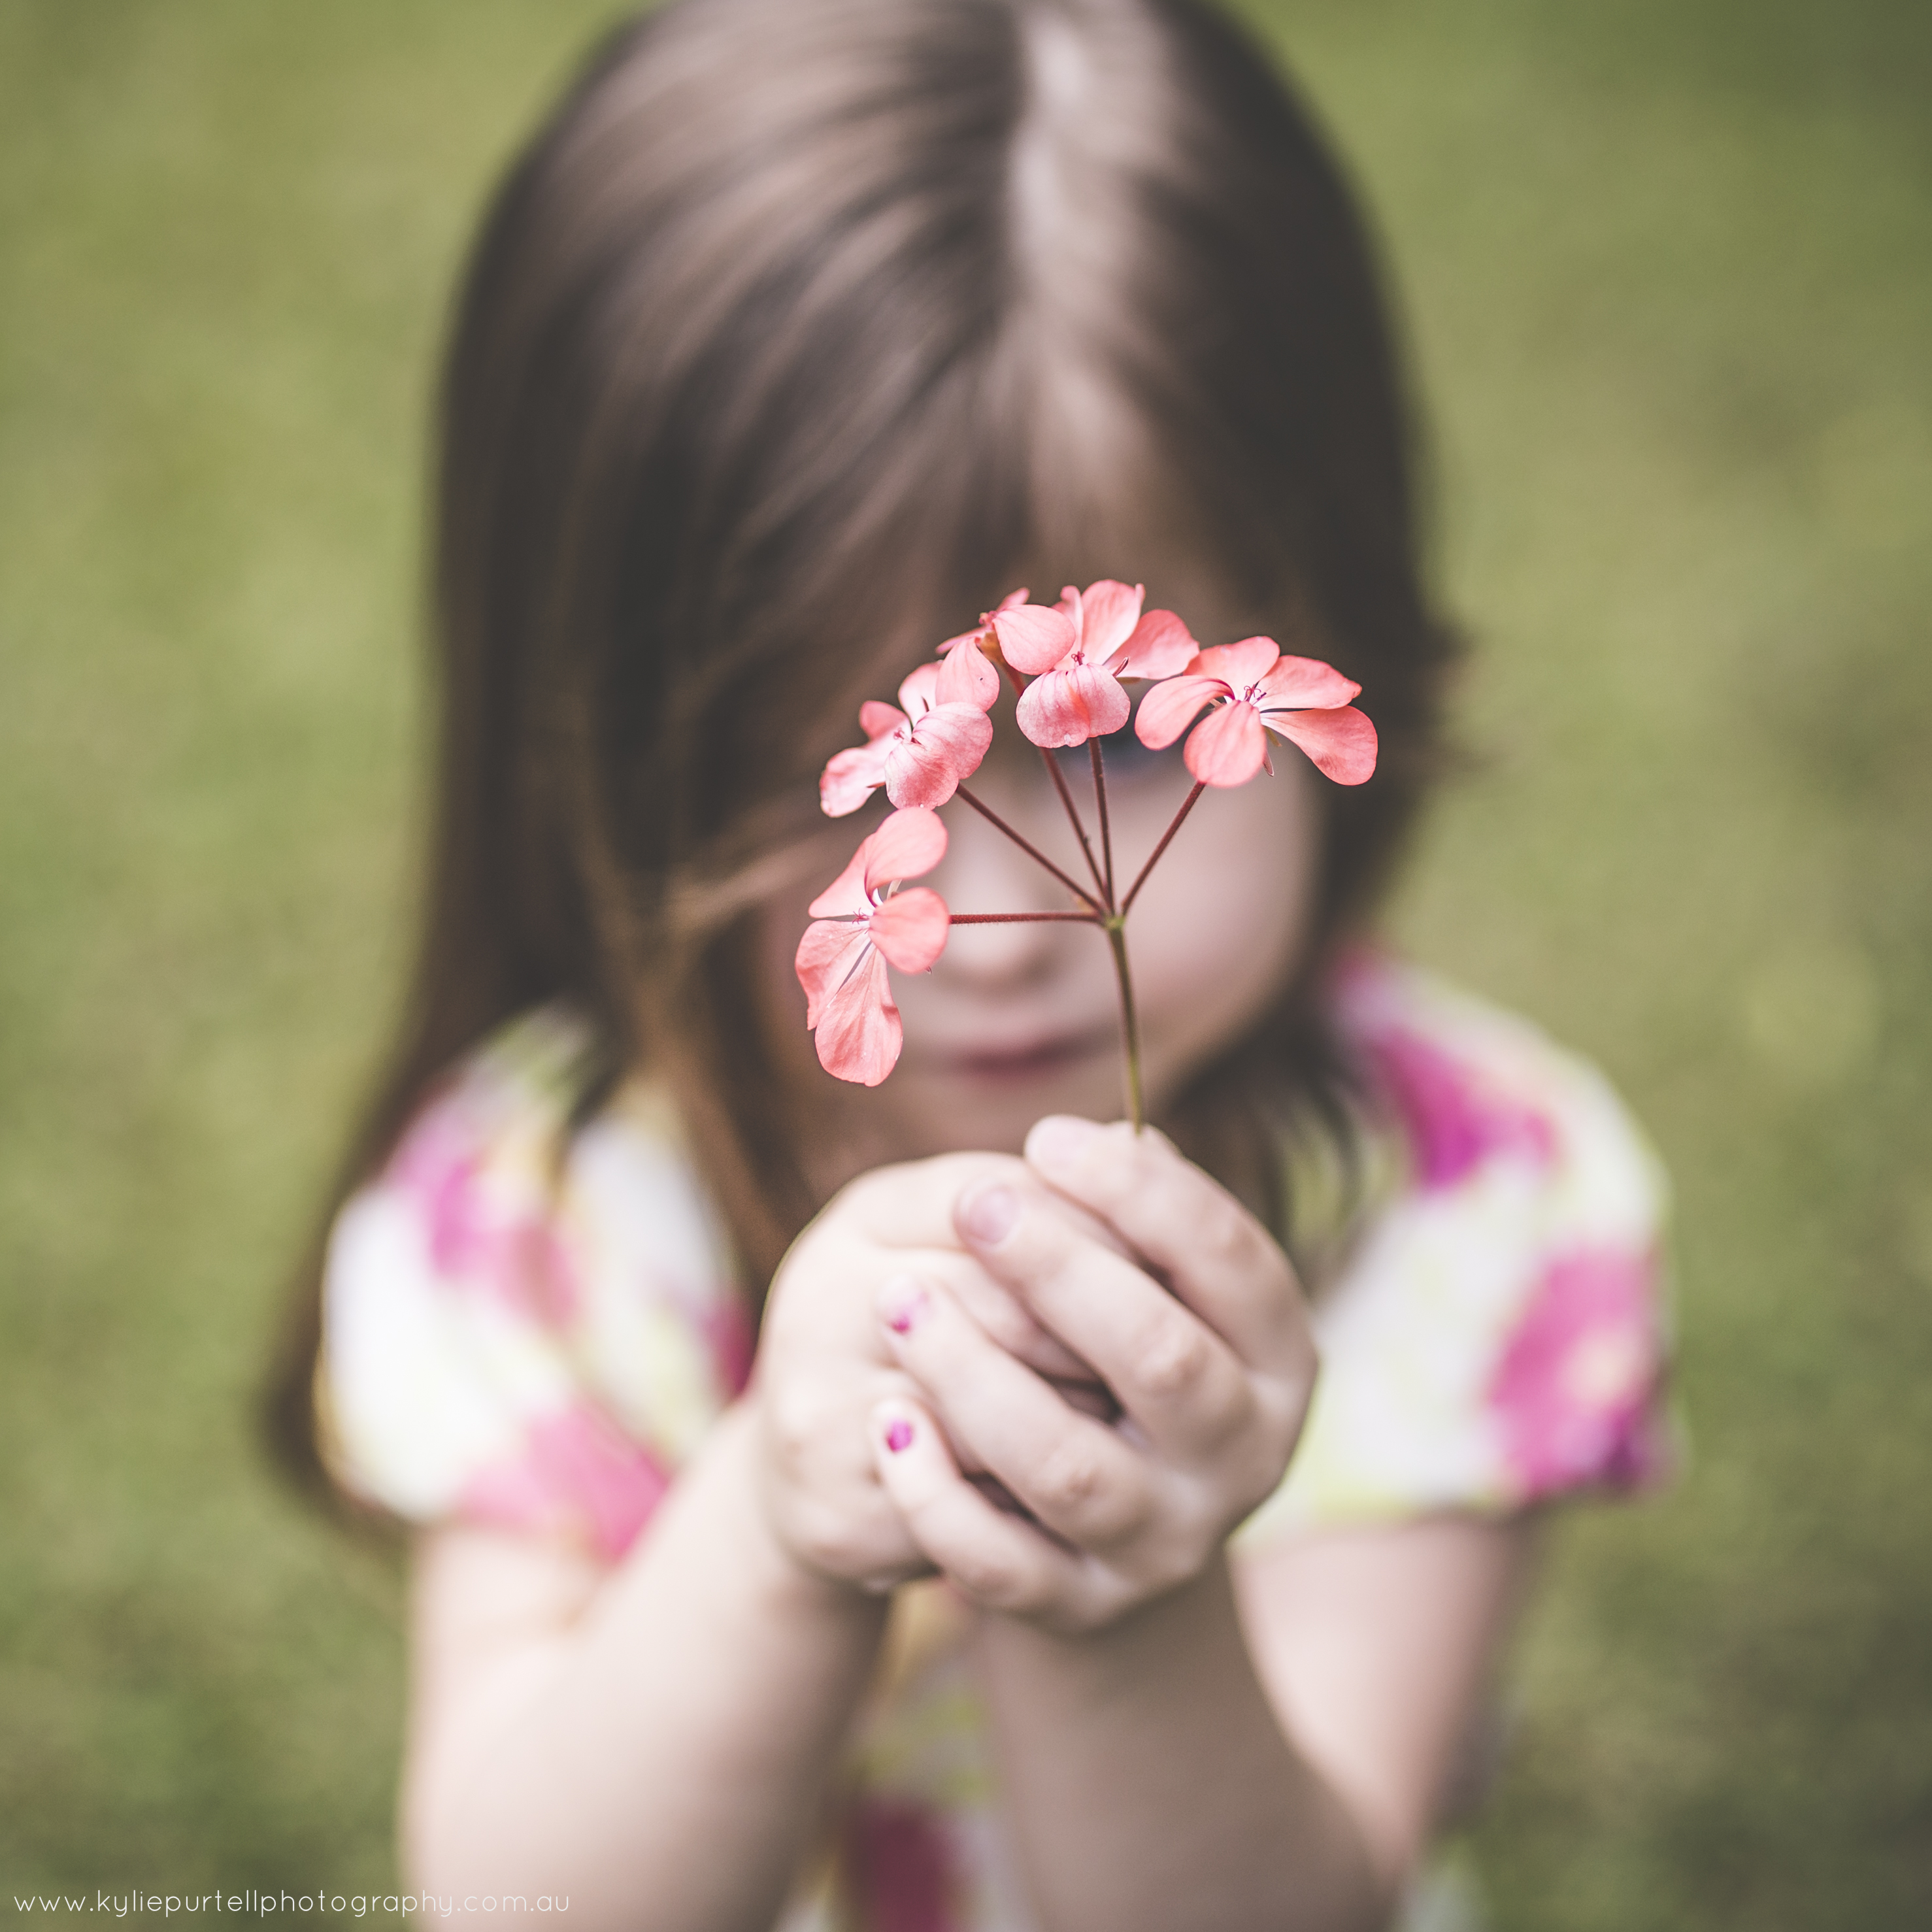 Treasure the flowers they pick for you